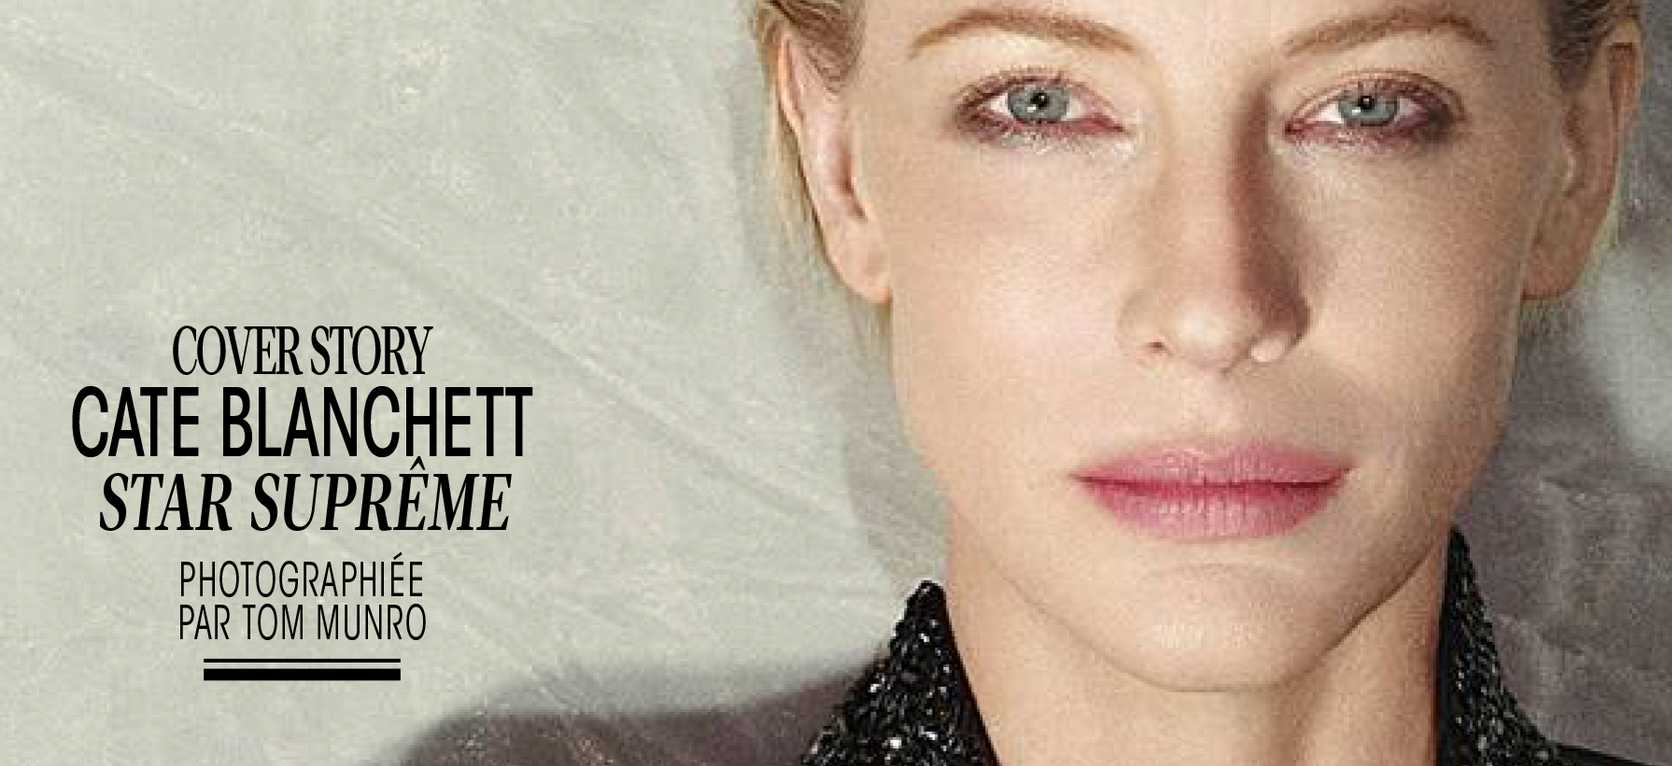 Cate Blanchett on the cover of Madame Figaro